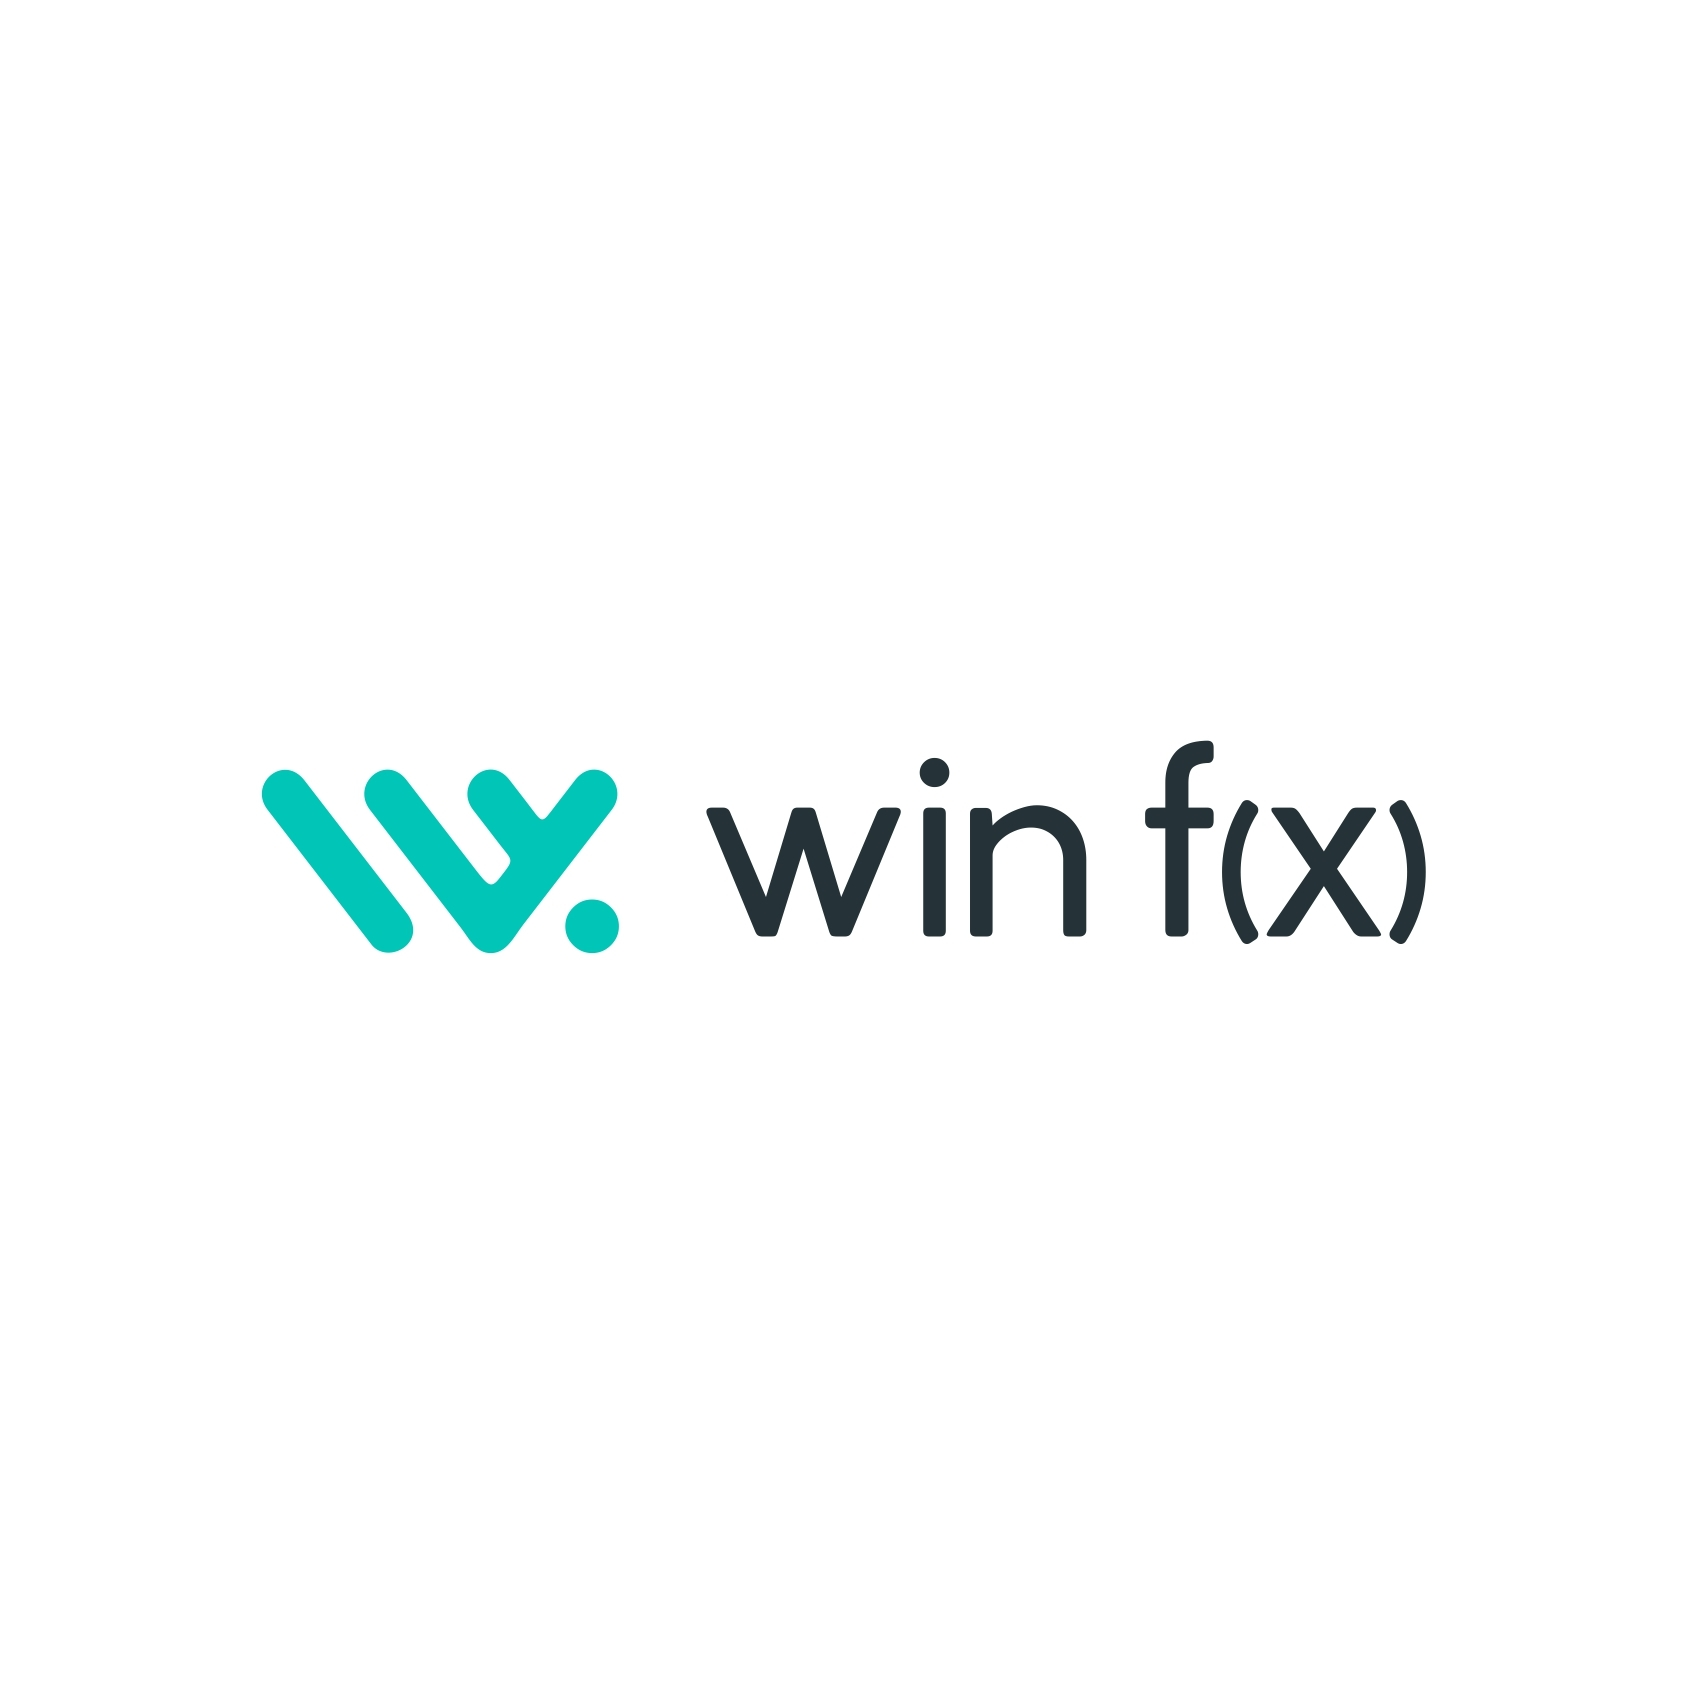 Win FX Financial Innovation Ltd